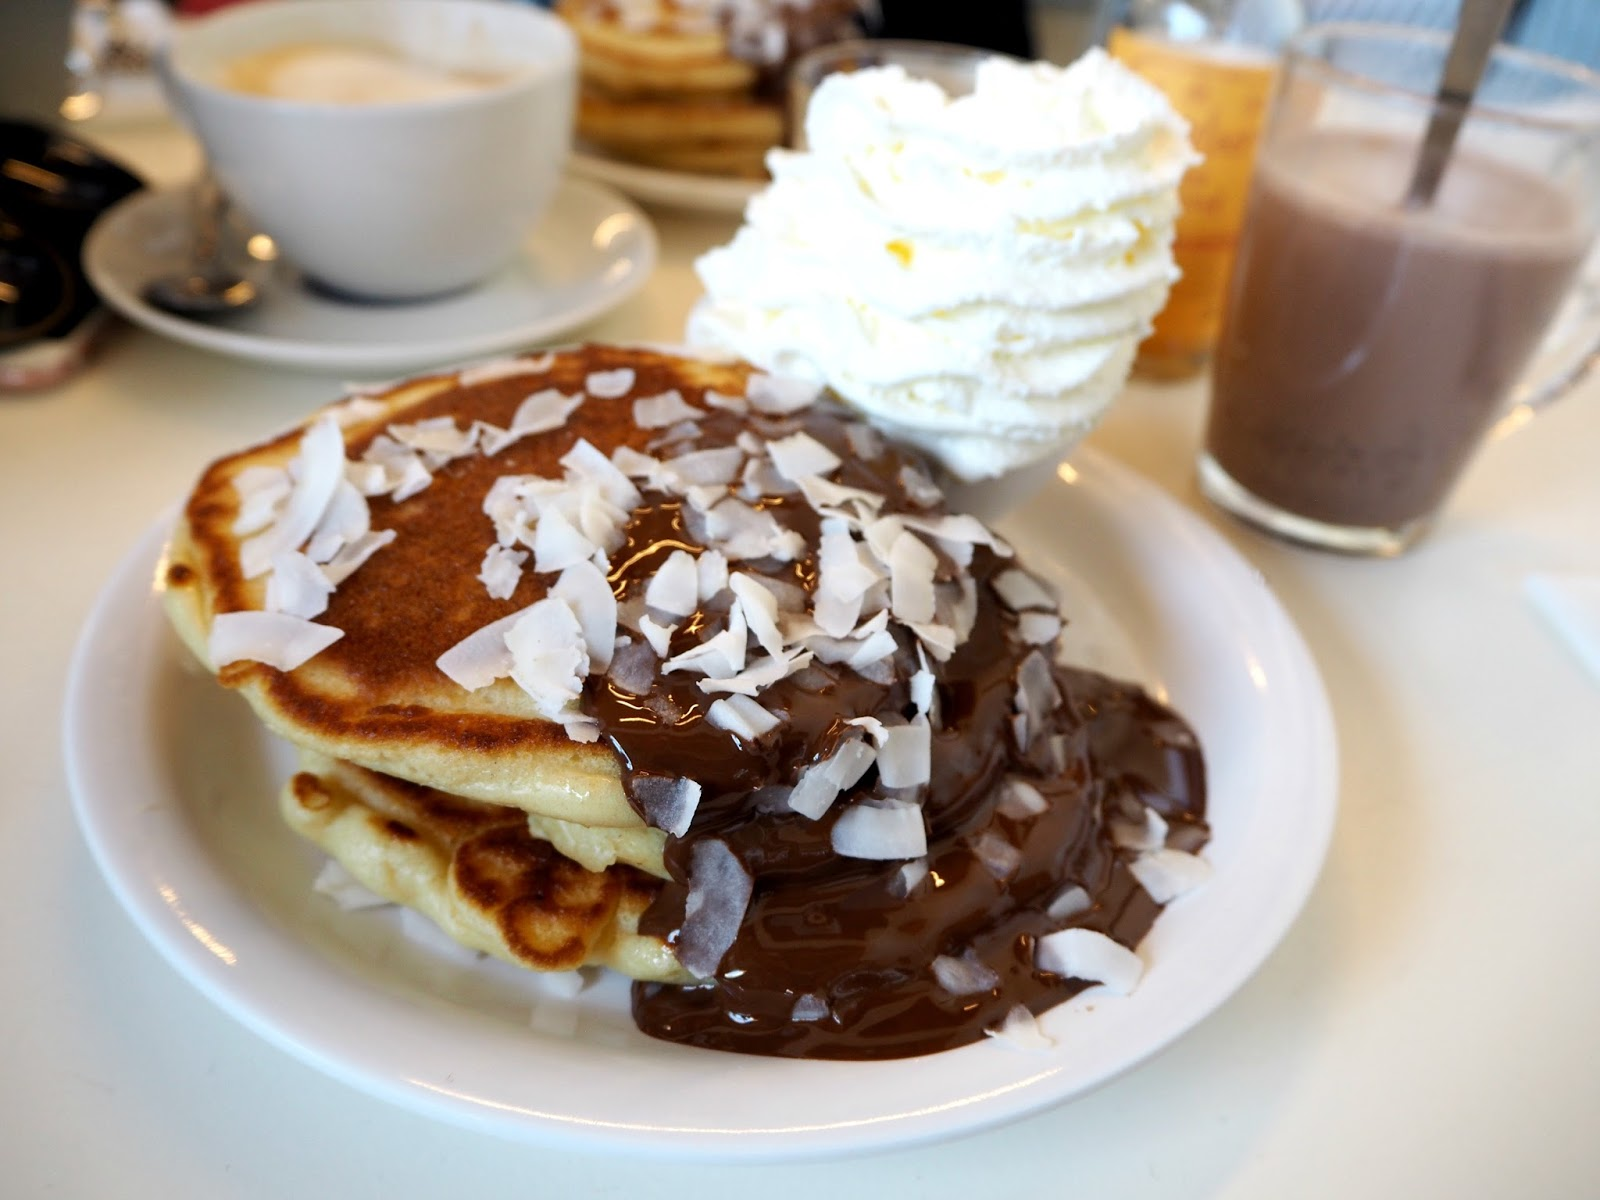 Pancakes Amsterdam chocolate with coconut flakes